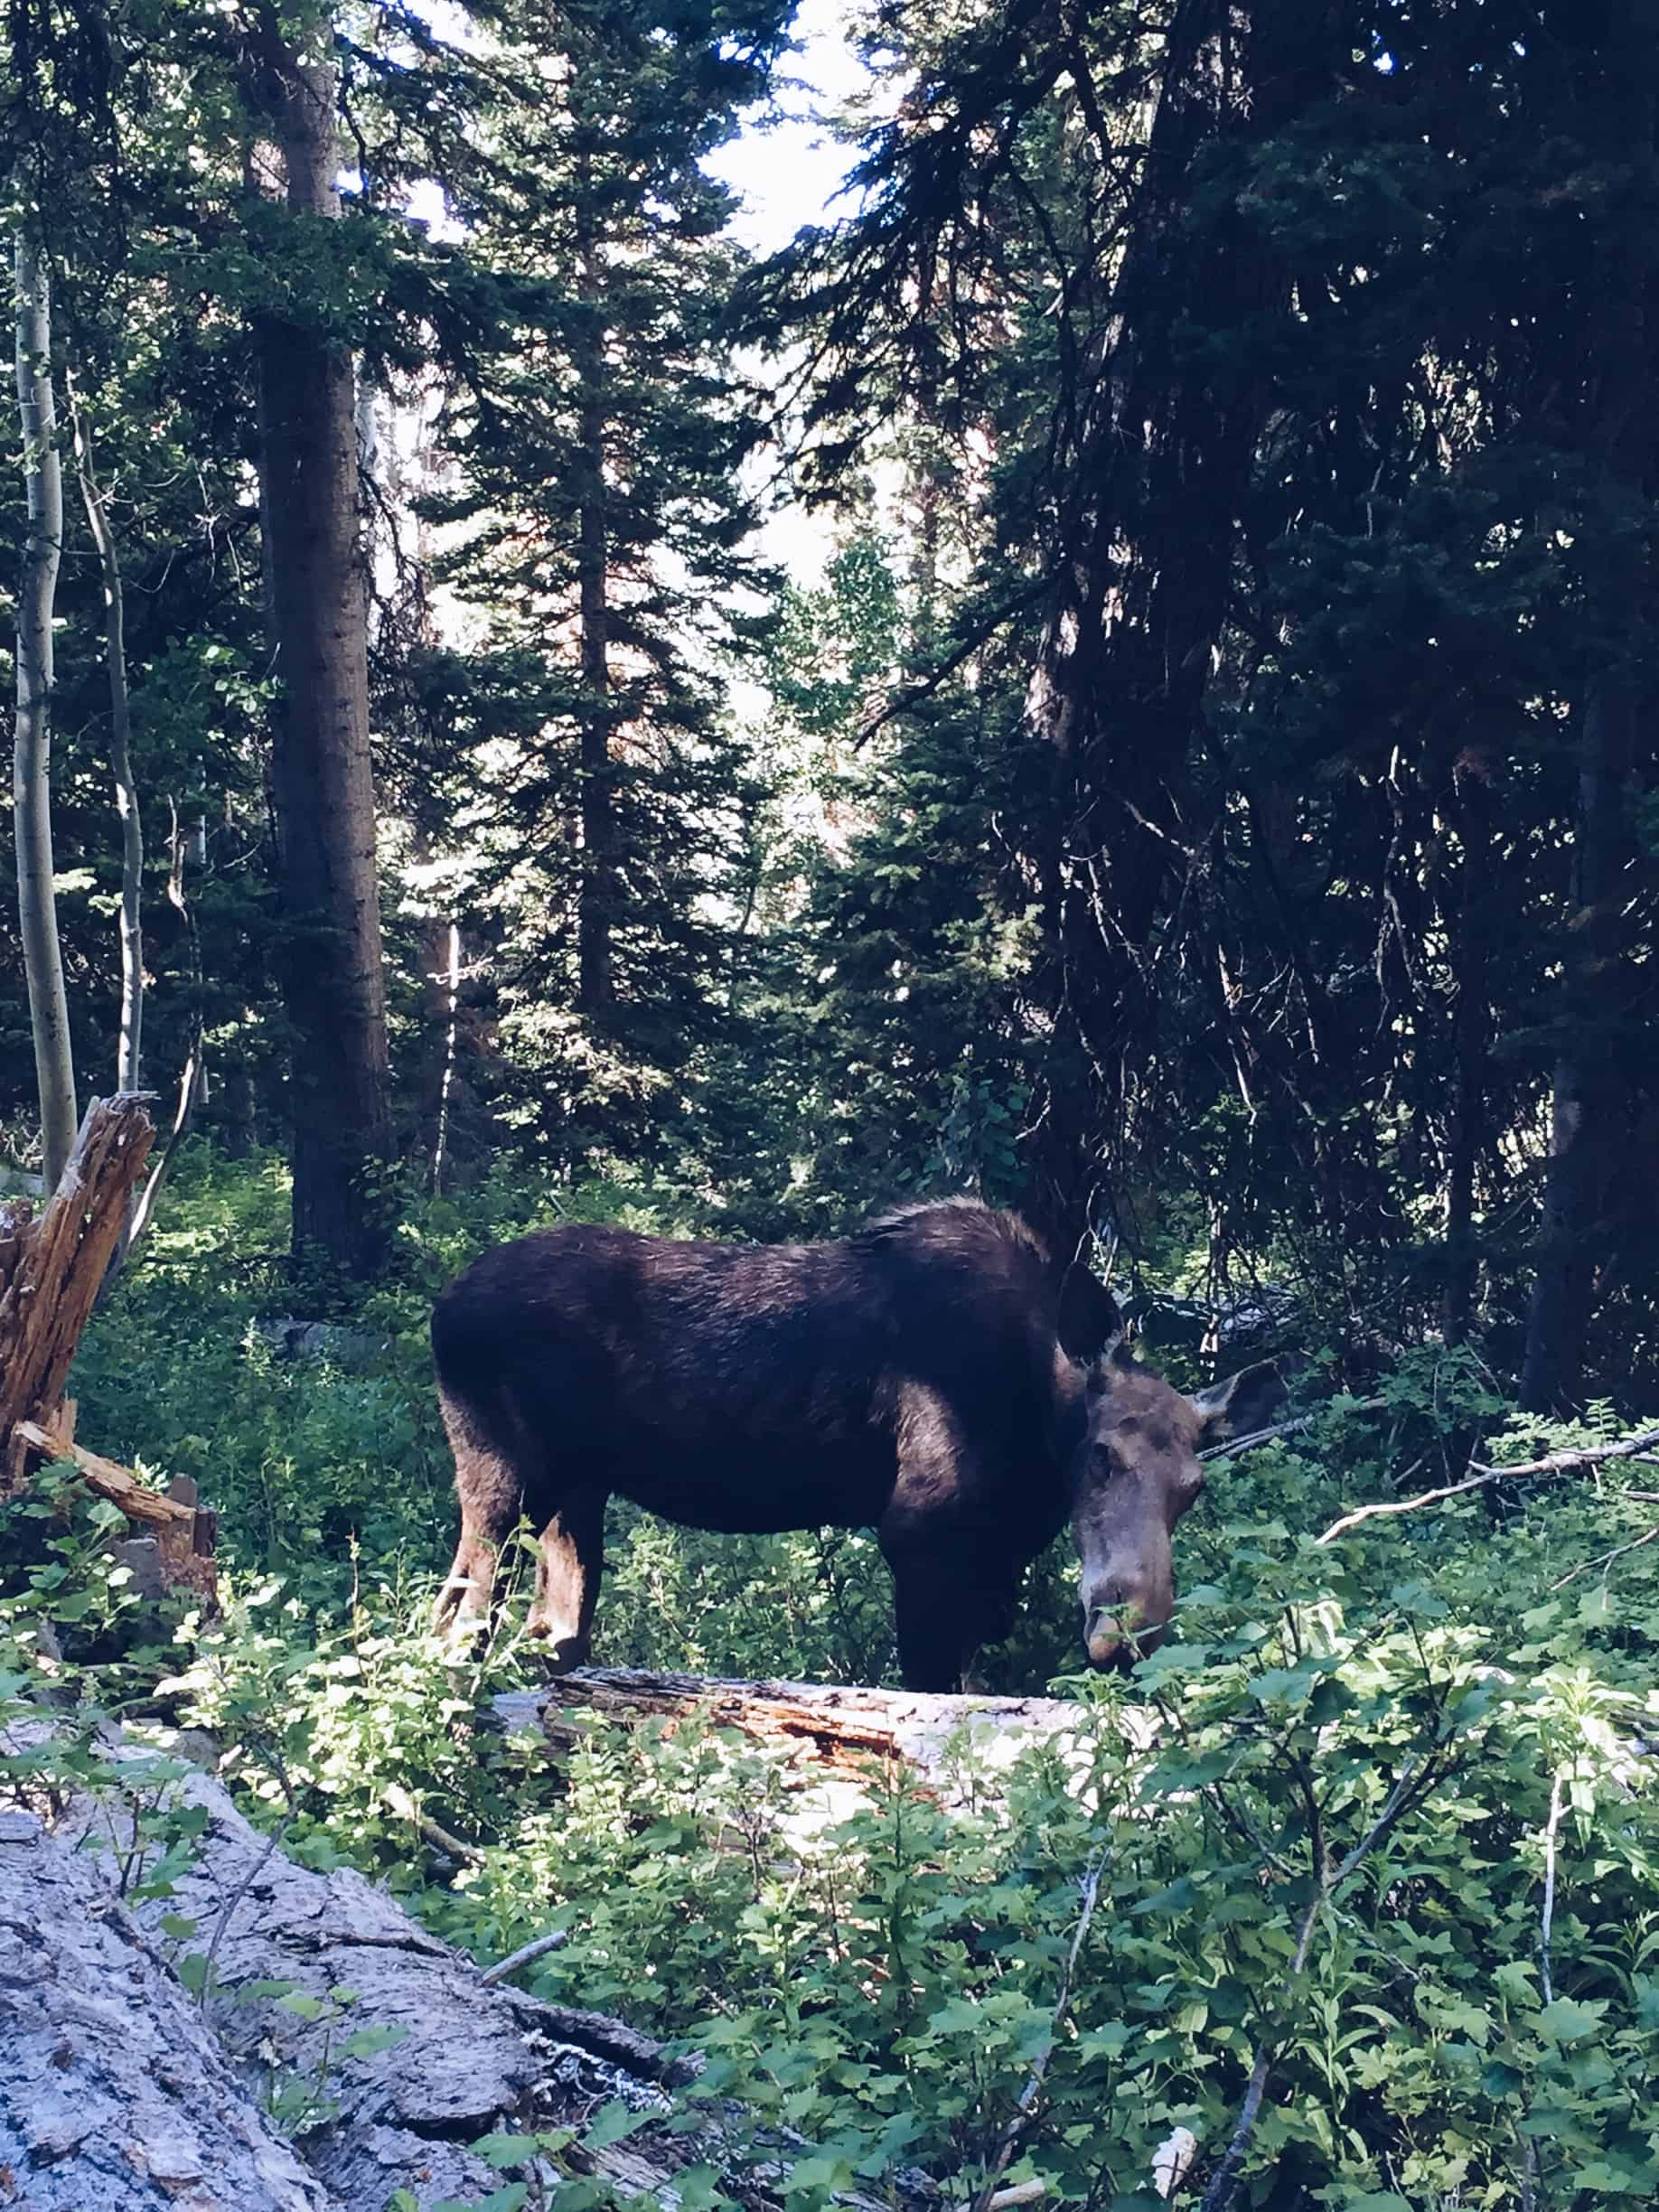 A moose on the trail at Solitude Mountain